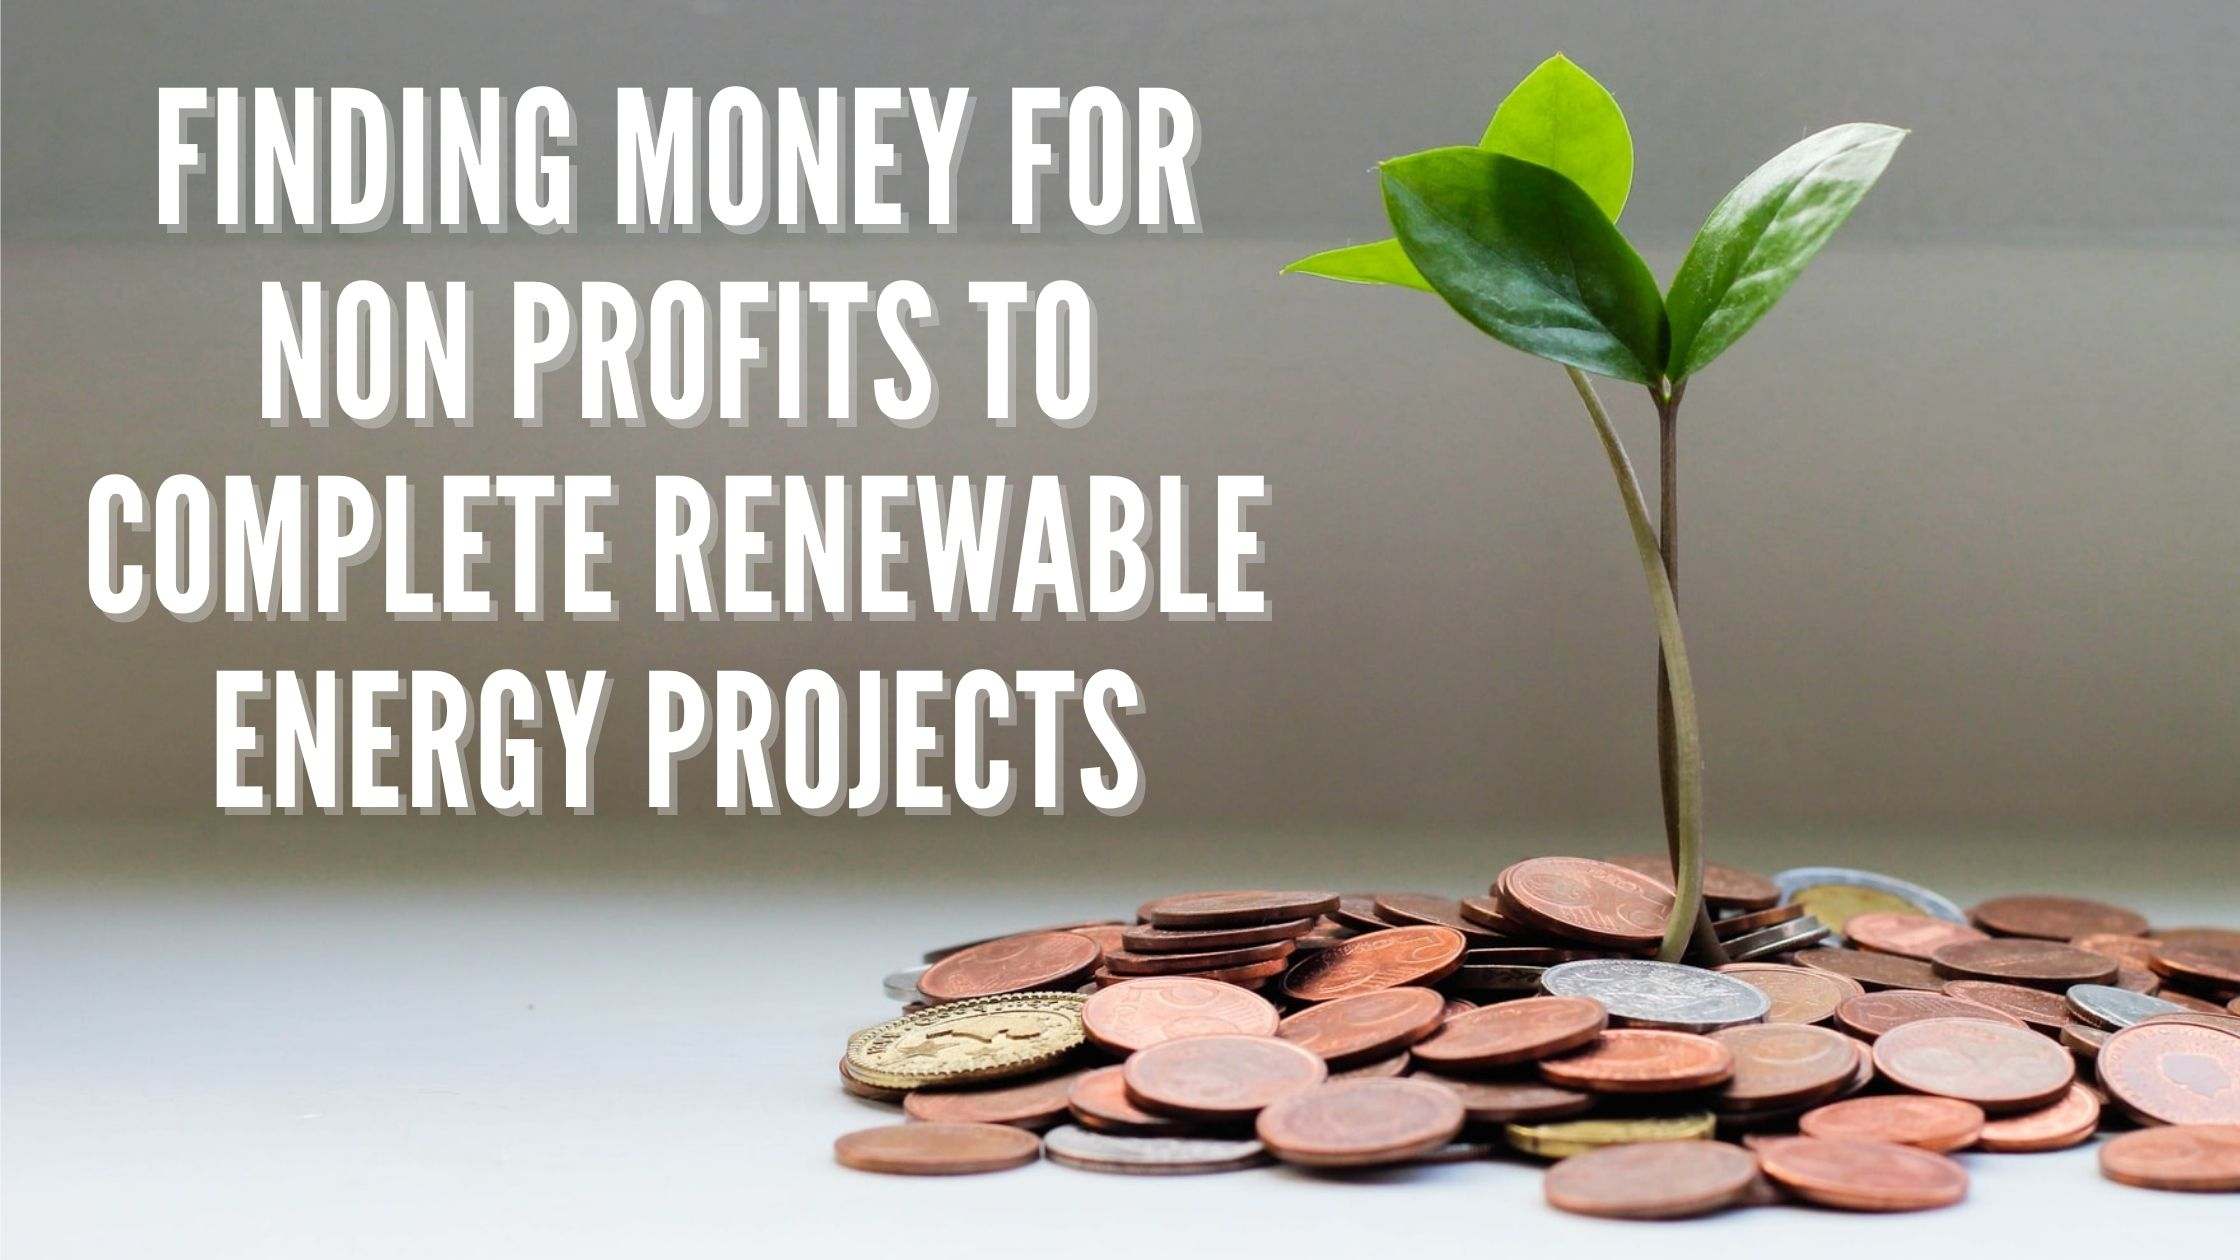 Finding Funds for Nonprofits Renewable Energy Projects